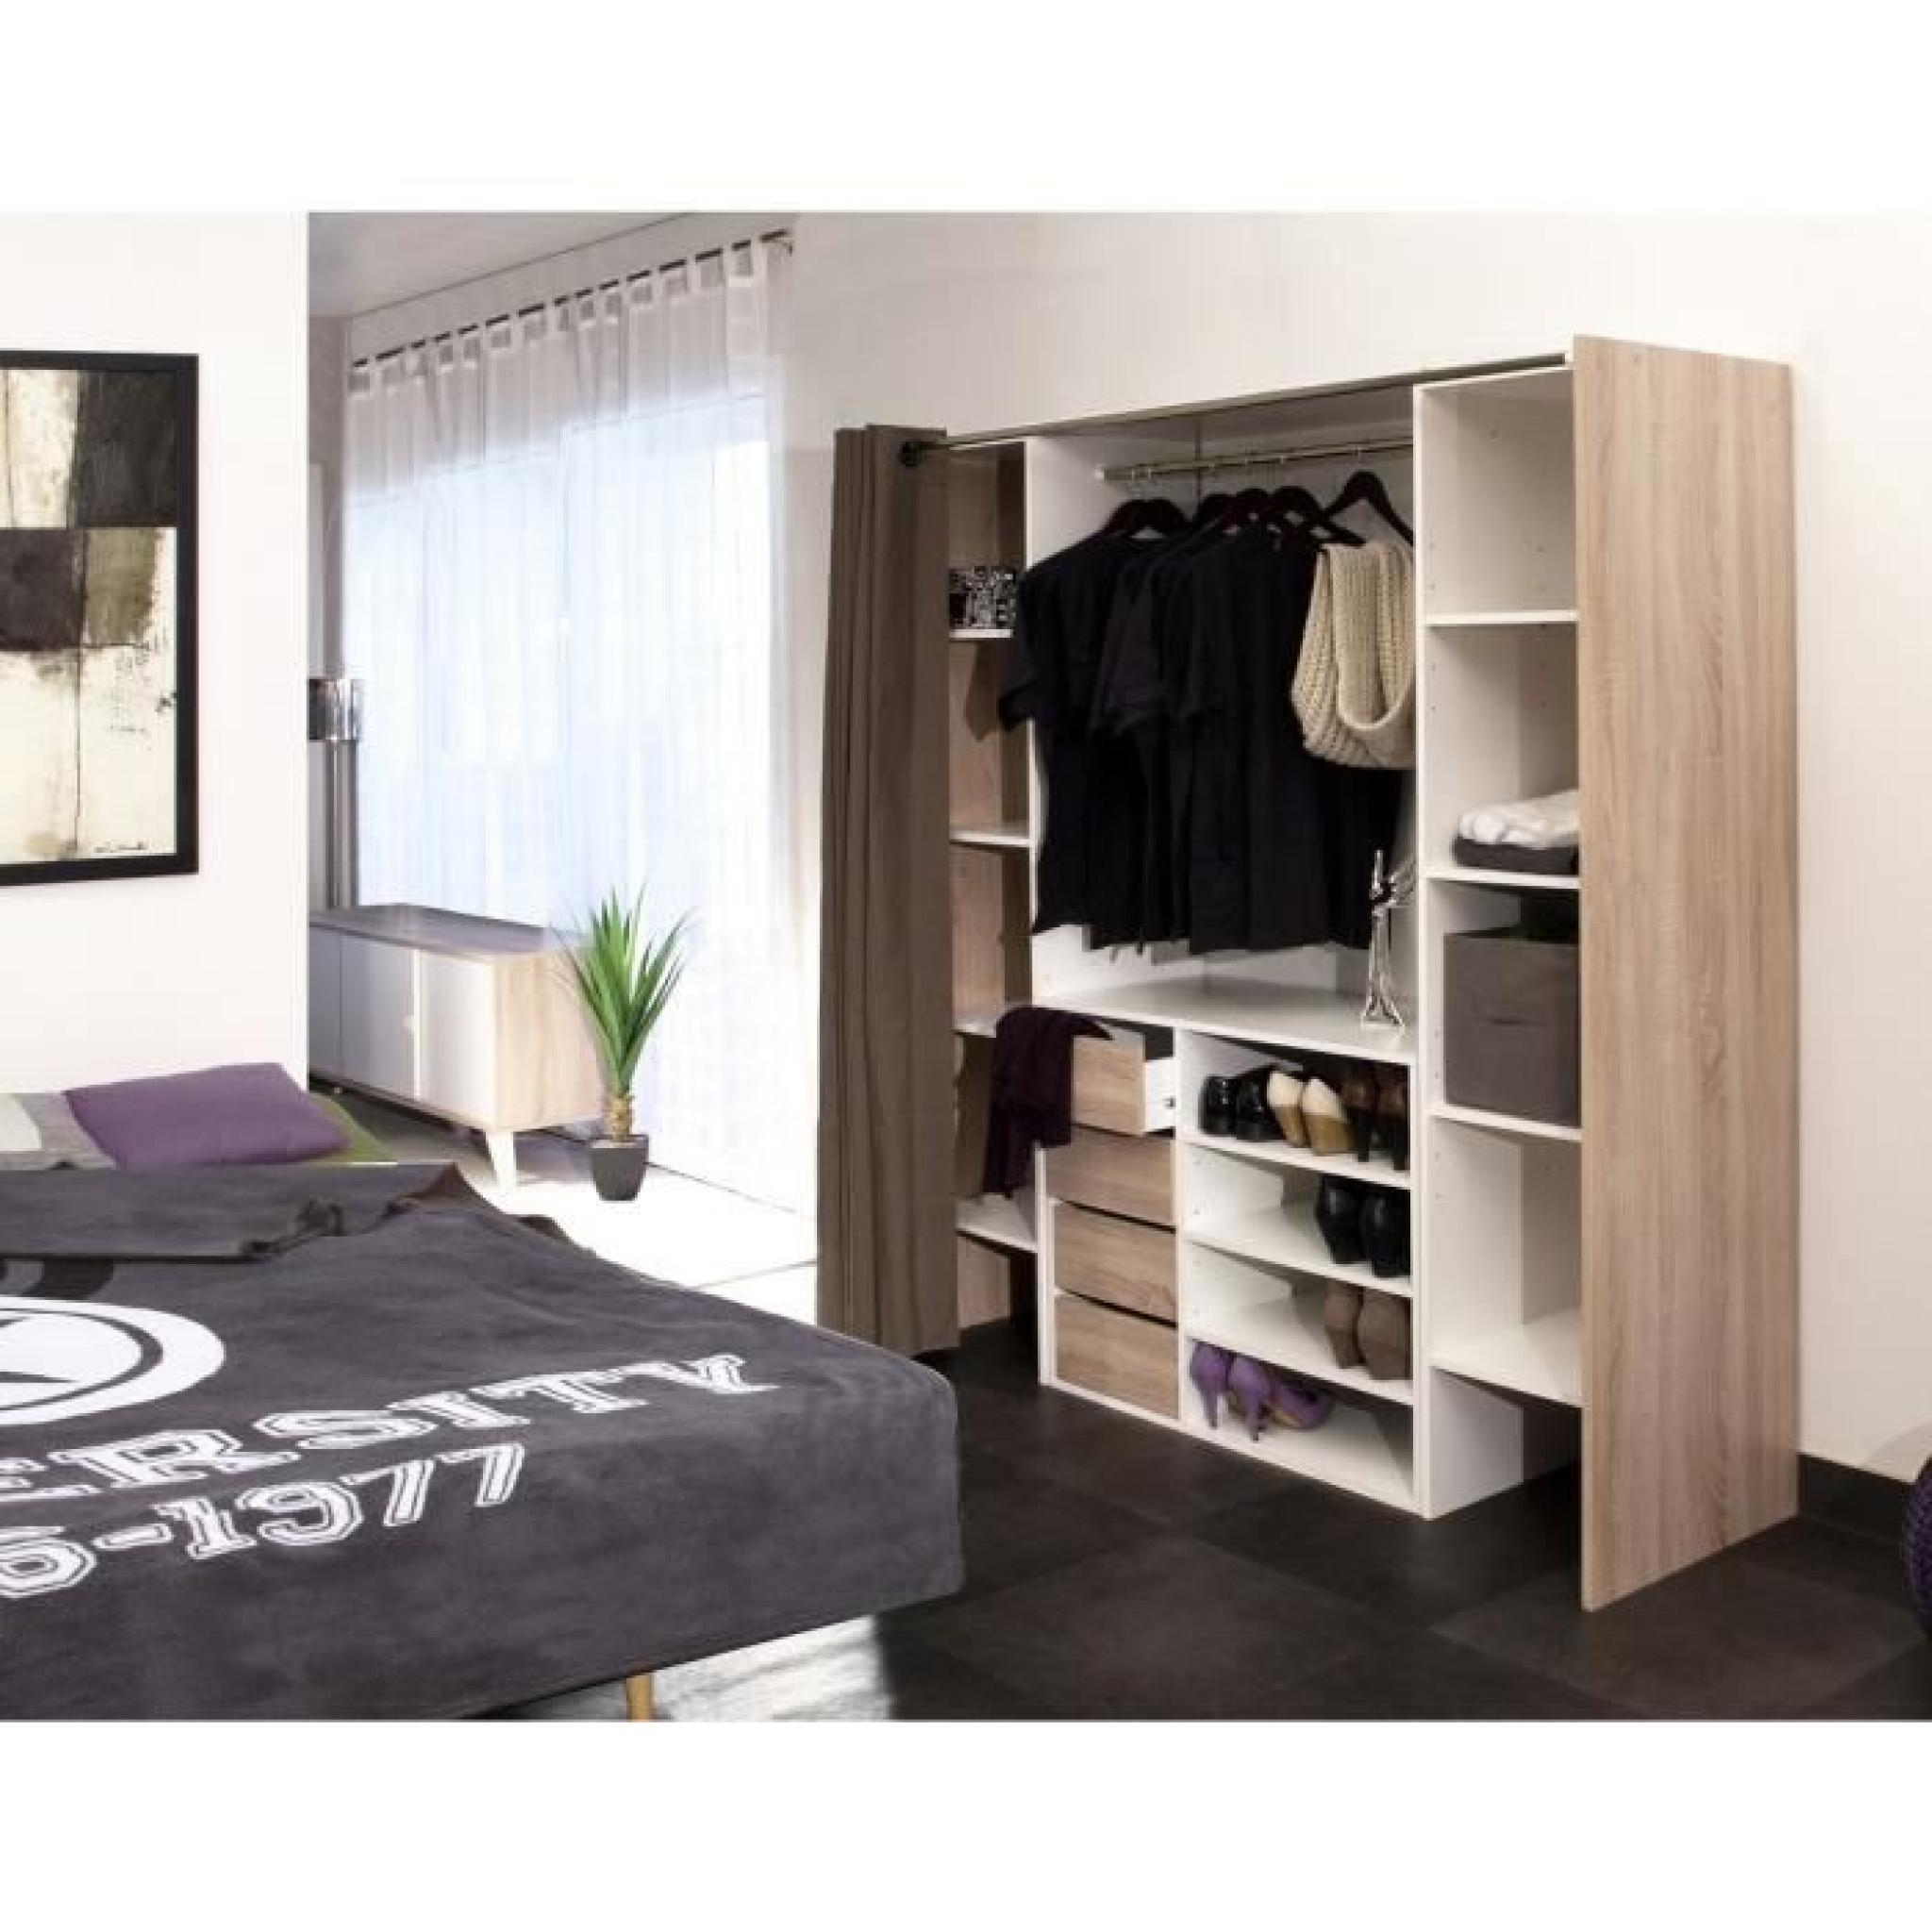 superb dressing avec rideau pas cher with dressing avec. Black Bedroom Furniture Sets. Home Design Ideas